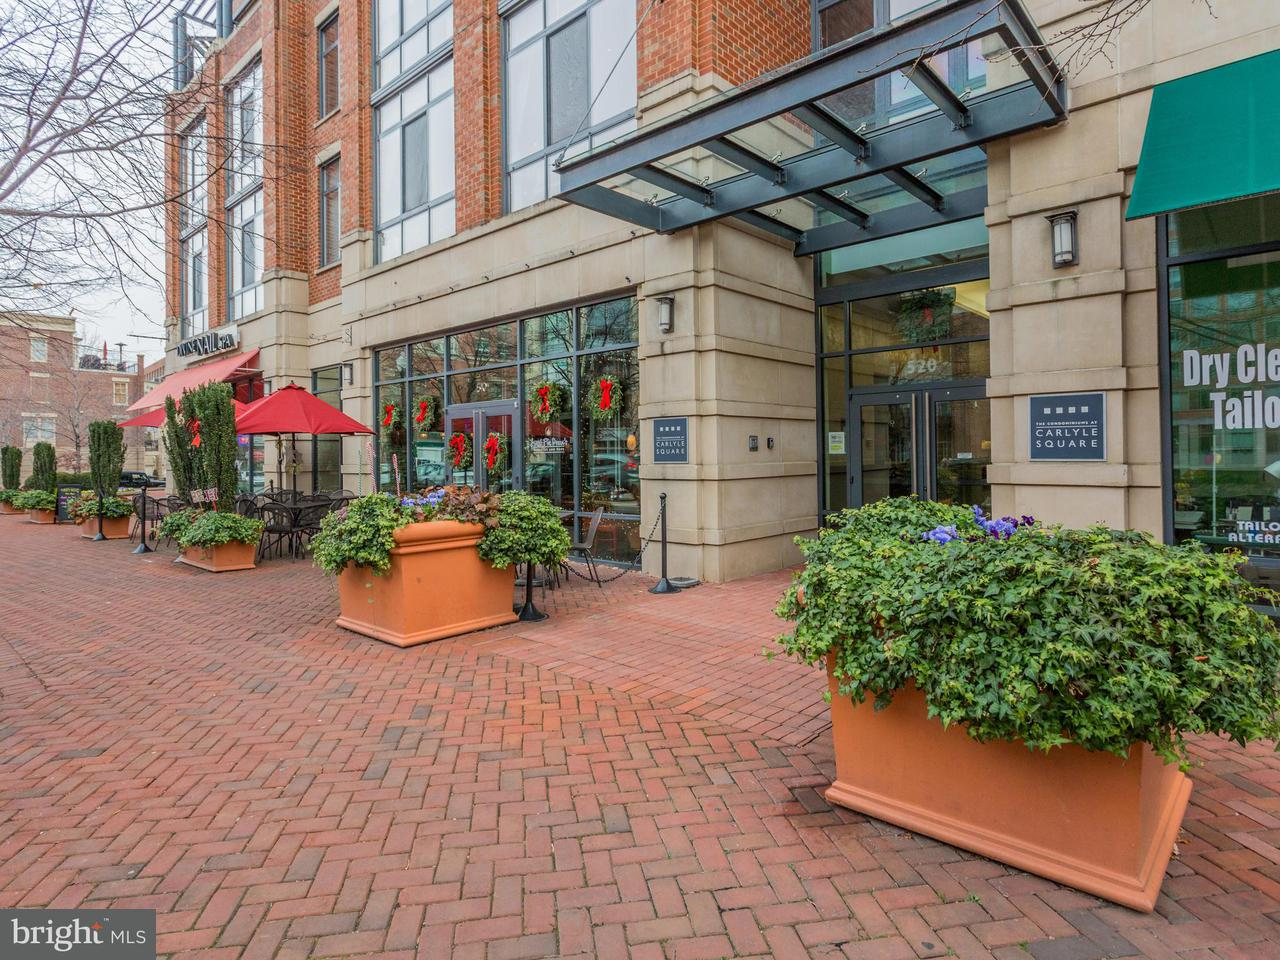 Townhouse for Sale at 520 JOHN CARLYLE ST #322 520 JOHN CARLYLE ST #322 Alexandria, Virginia 22314 United States